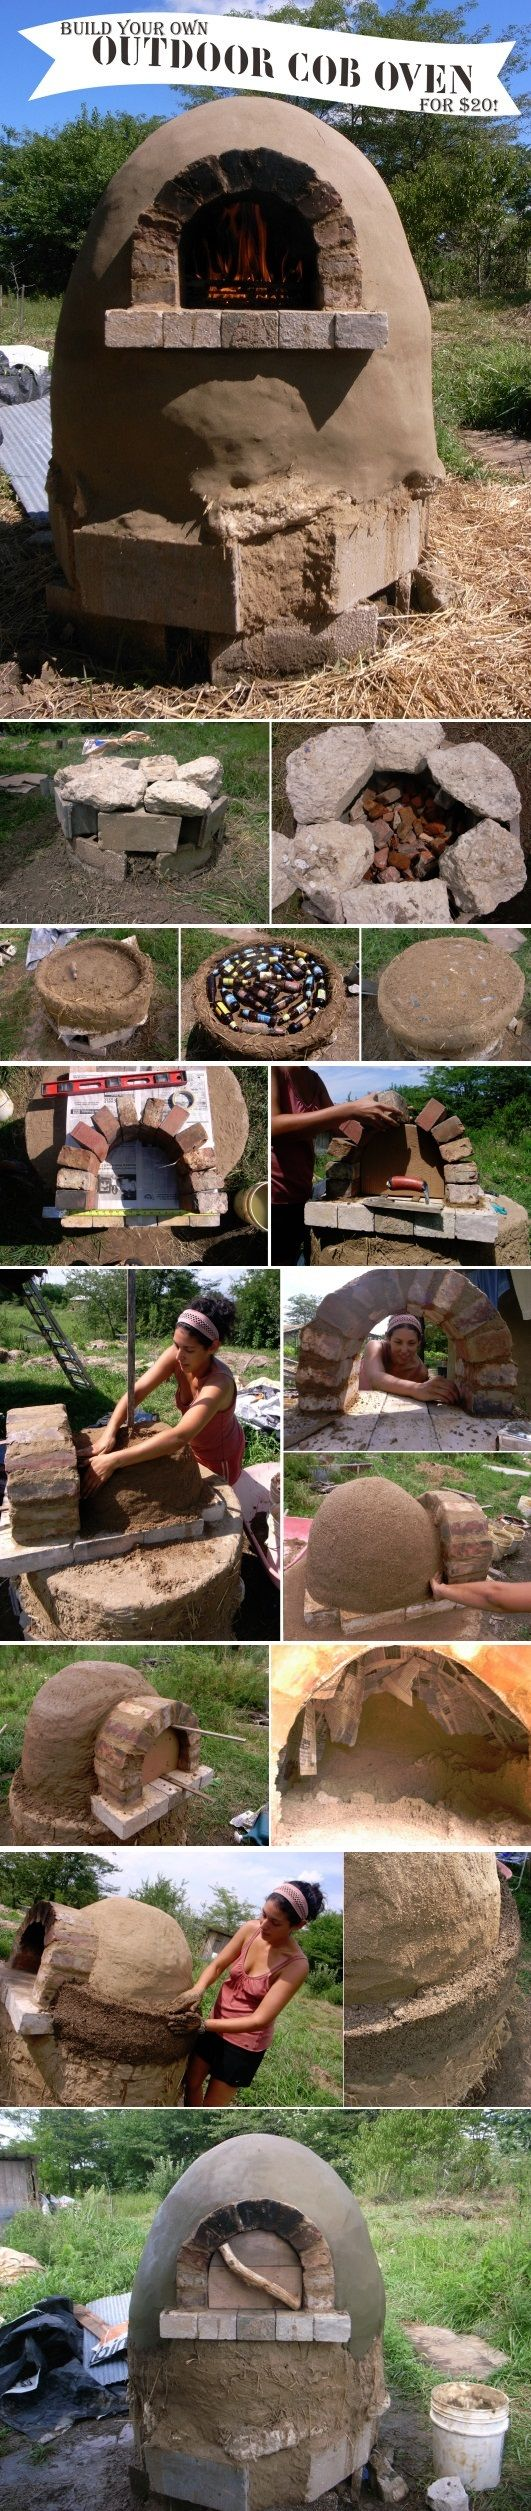 How To Build An Outdoor Cob Oven For $20 http://calgary.isgreen.ca/products/bikes/eco-friendly-bikes-not-just-a-fad-but-a-statement/